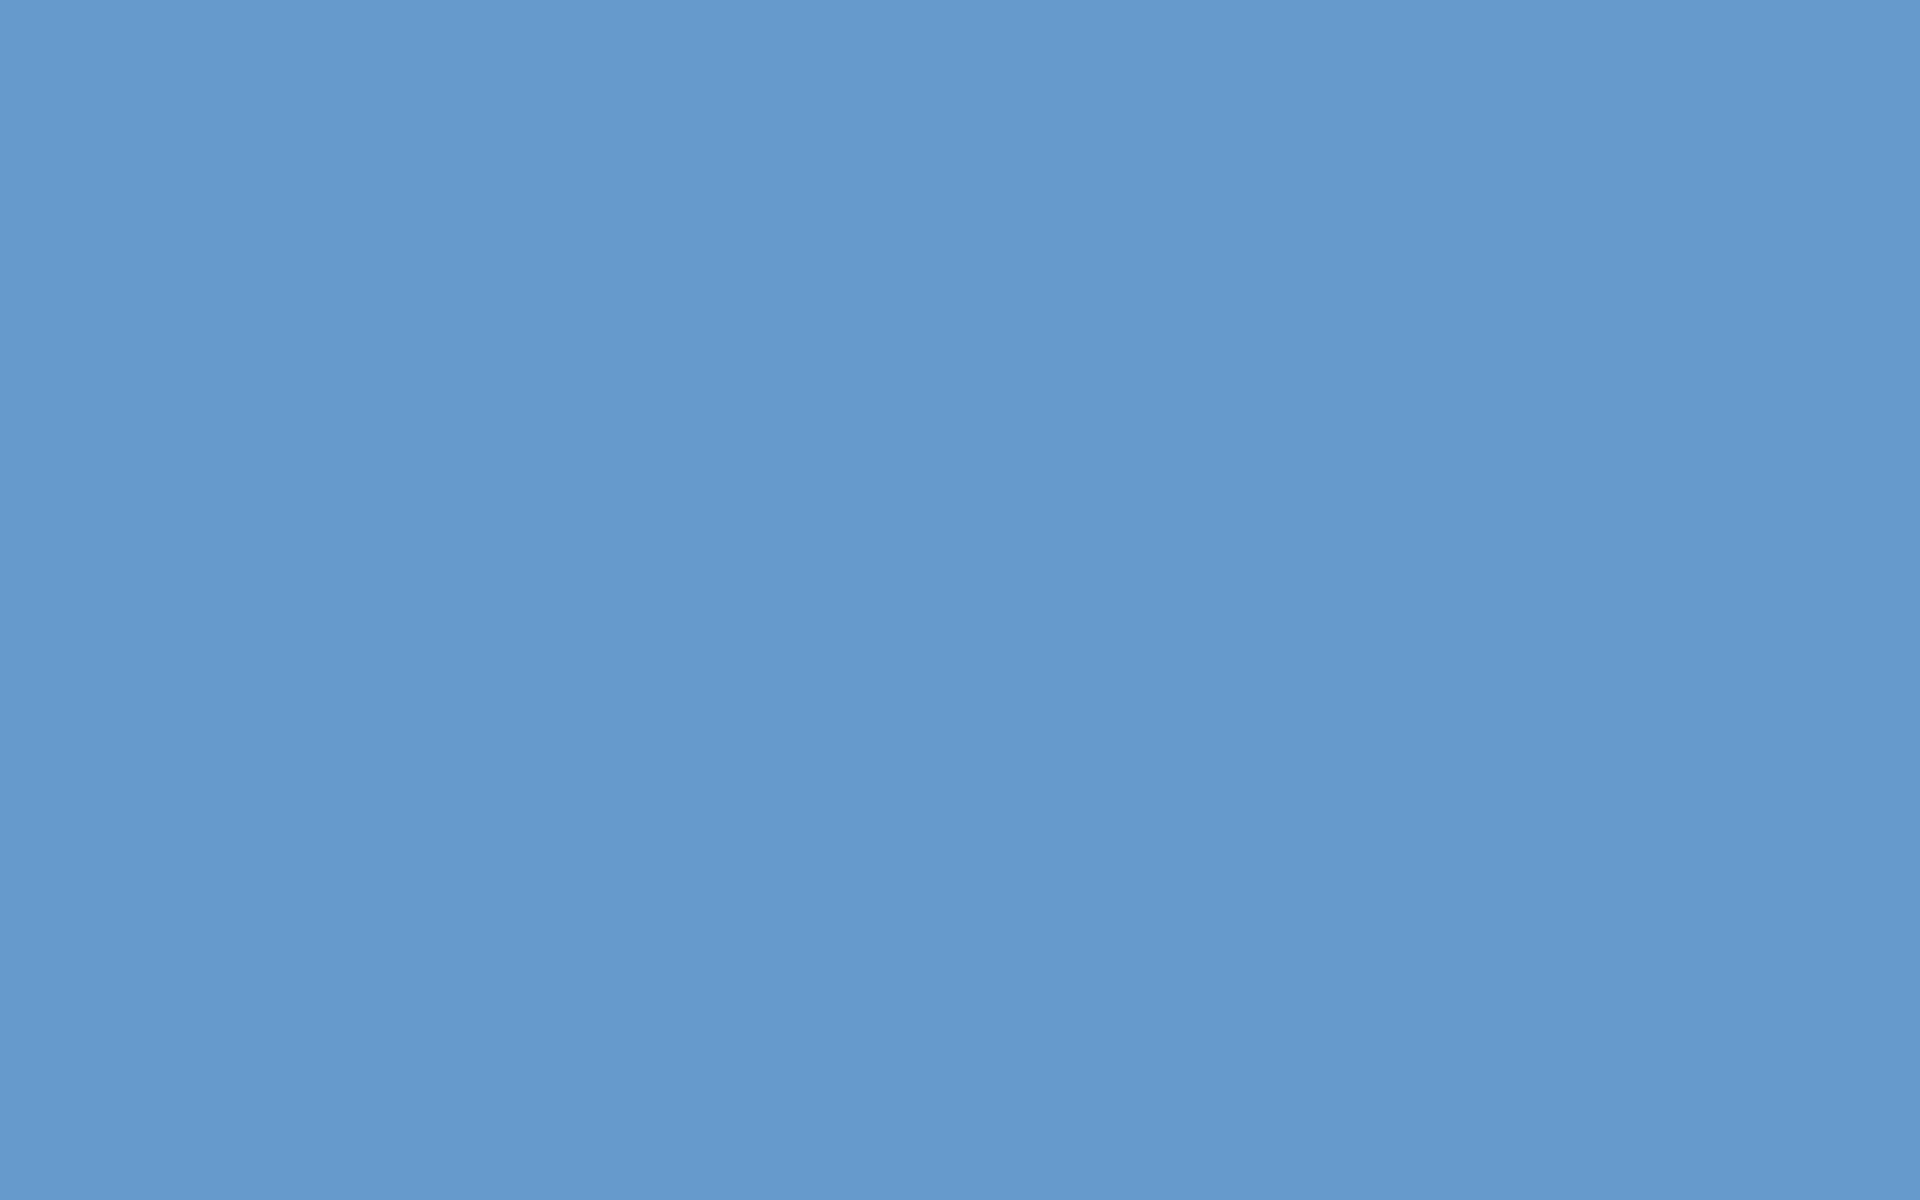 1920x1200 Blue-gray Solid Color Background